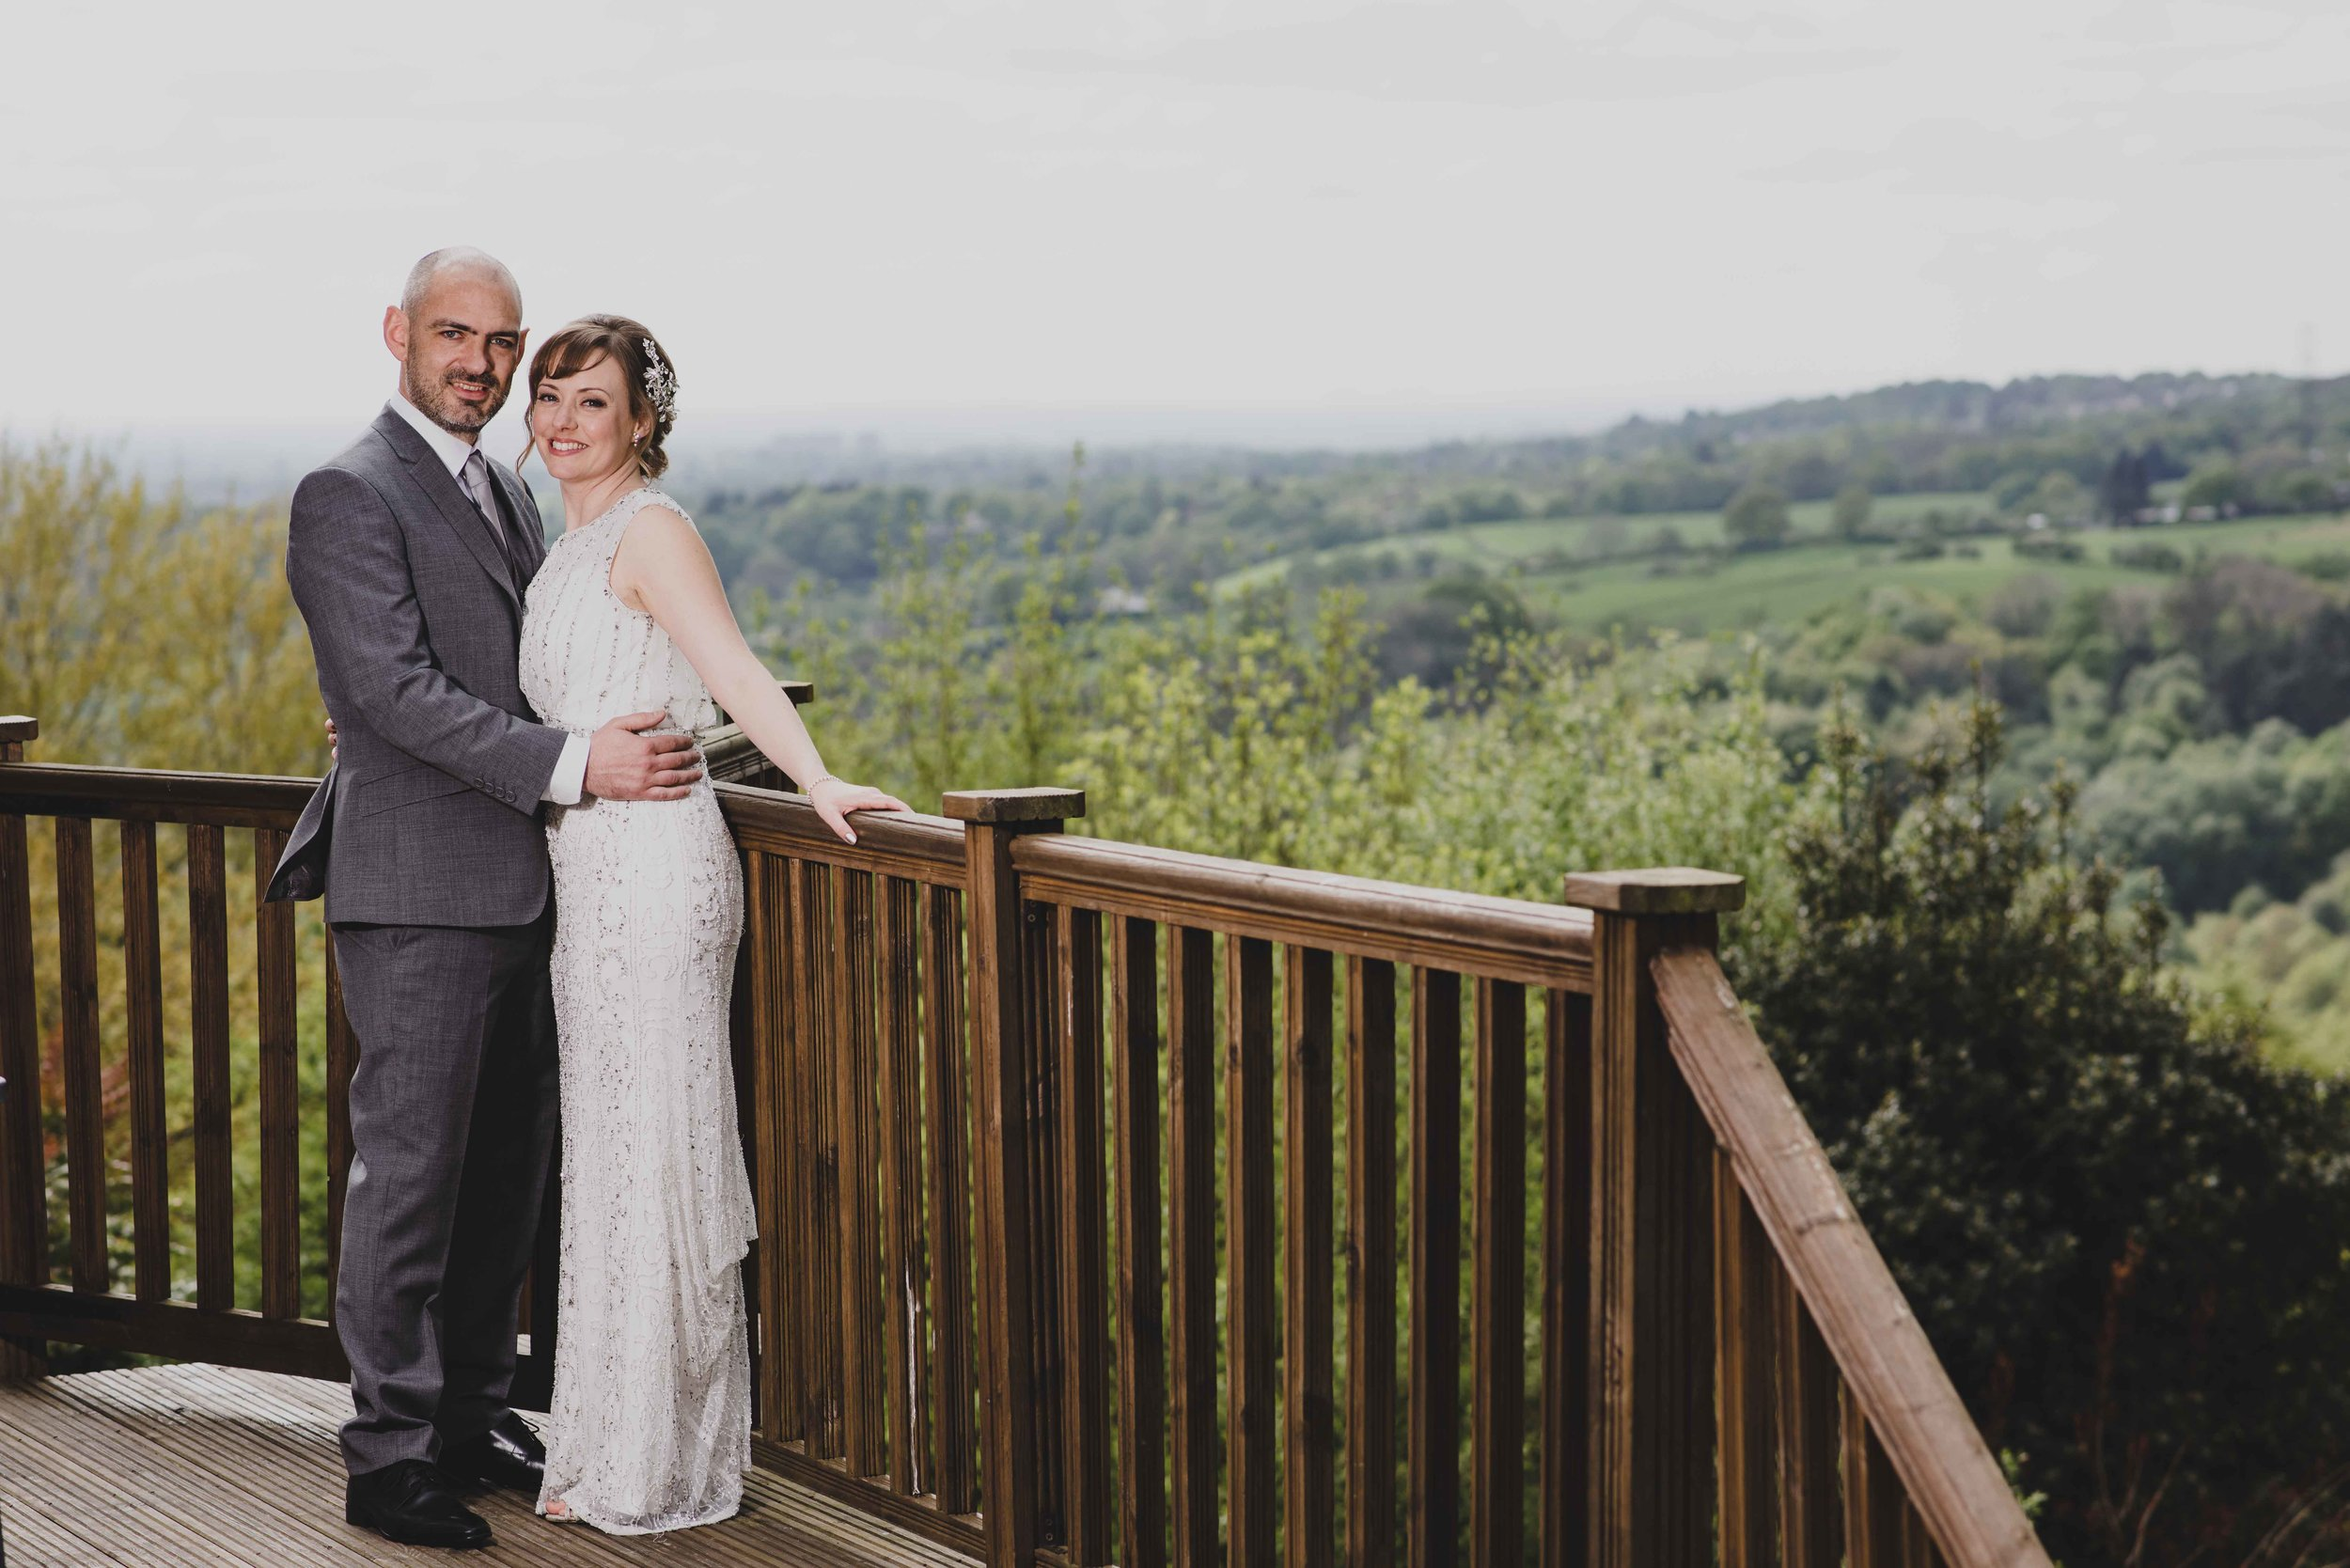 The stunning backdrop afforded by this amazing location is perfect for couple portraits